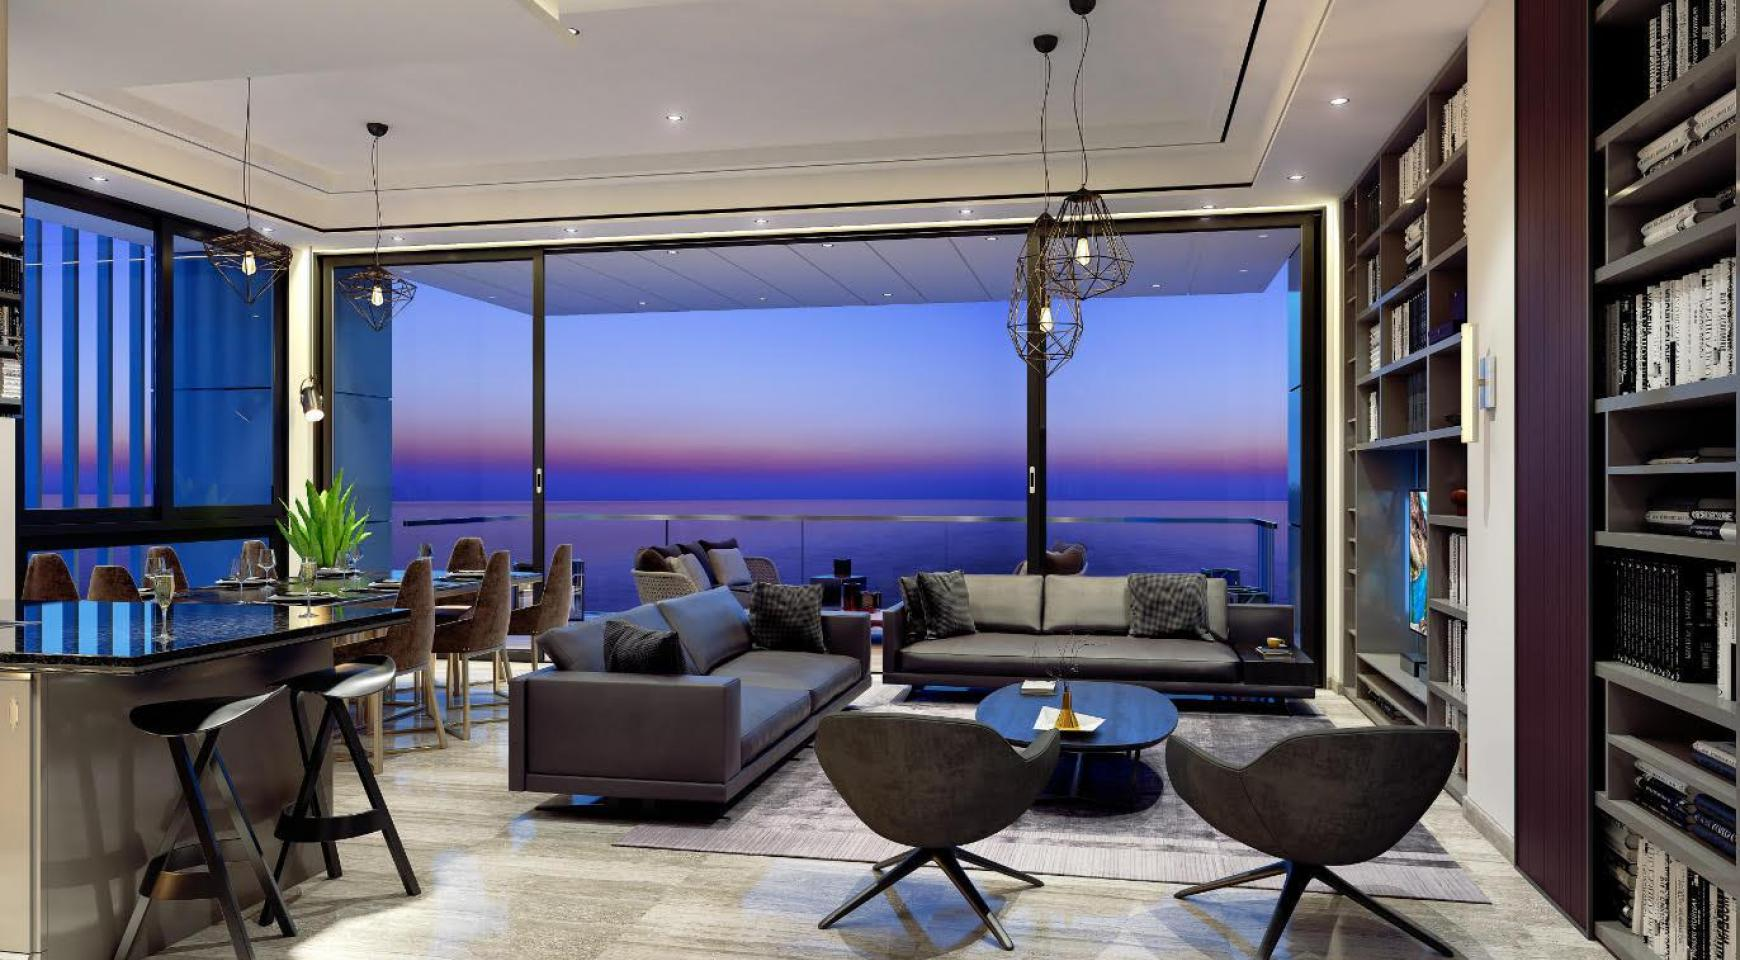 Spacious One Bedroom Apartment with Sea Views in a Luxury Complex - 3